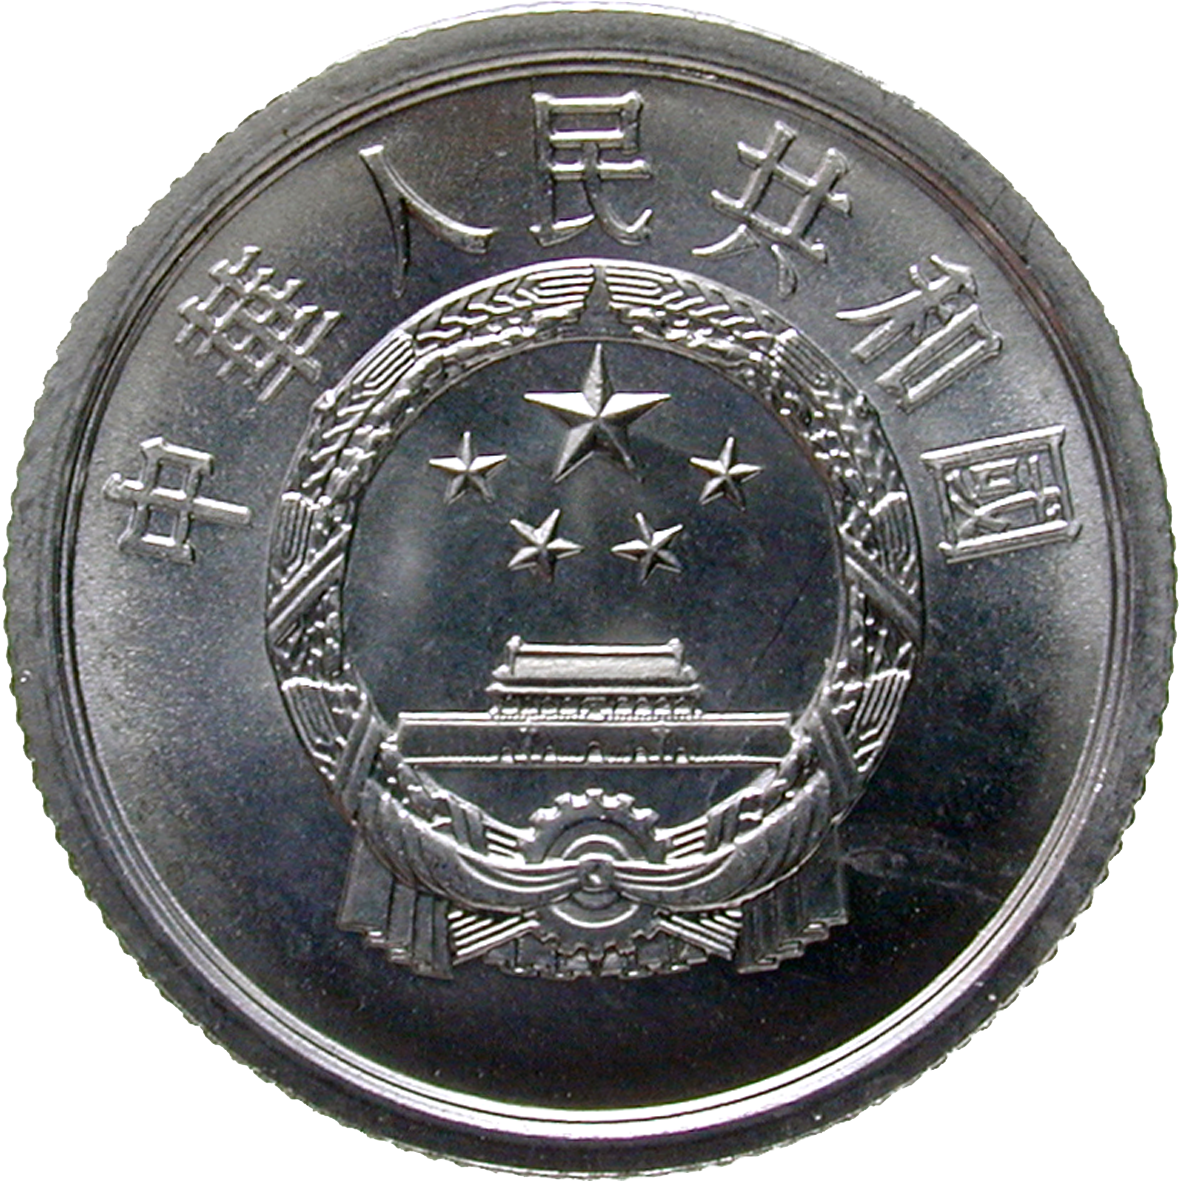 People's Republic of China, 2 Fen 1980 (obverse)